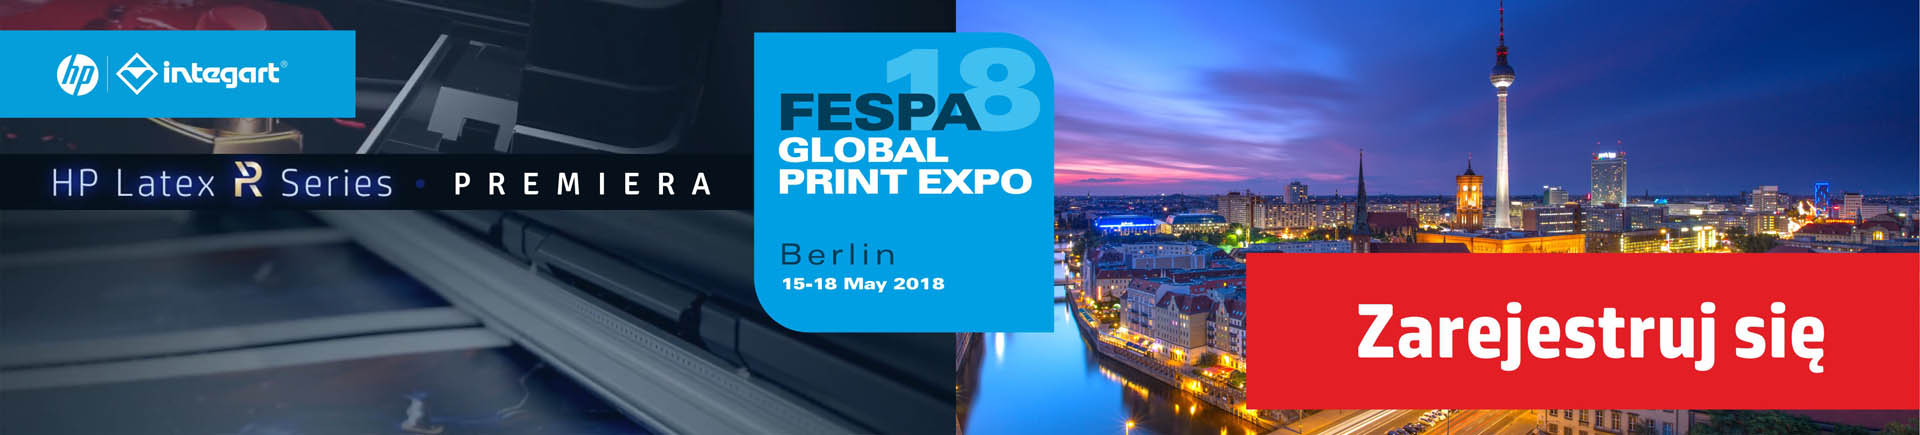 FESPA - 2018 with HP Latex R Series